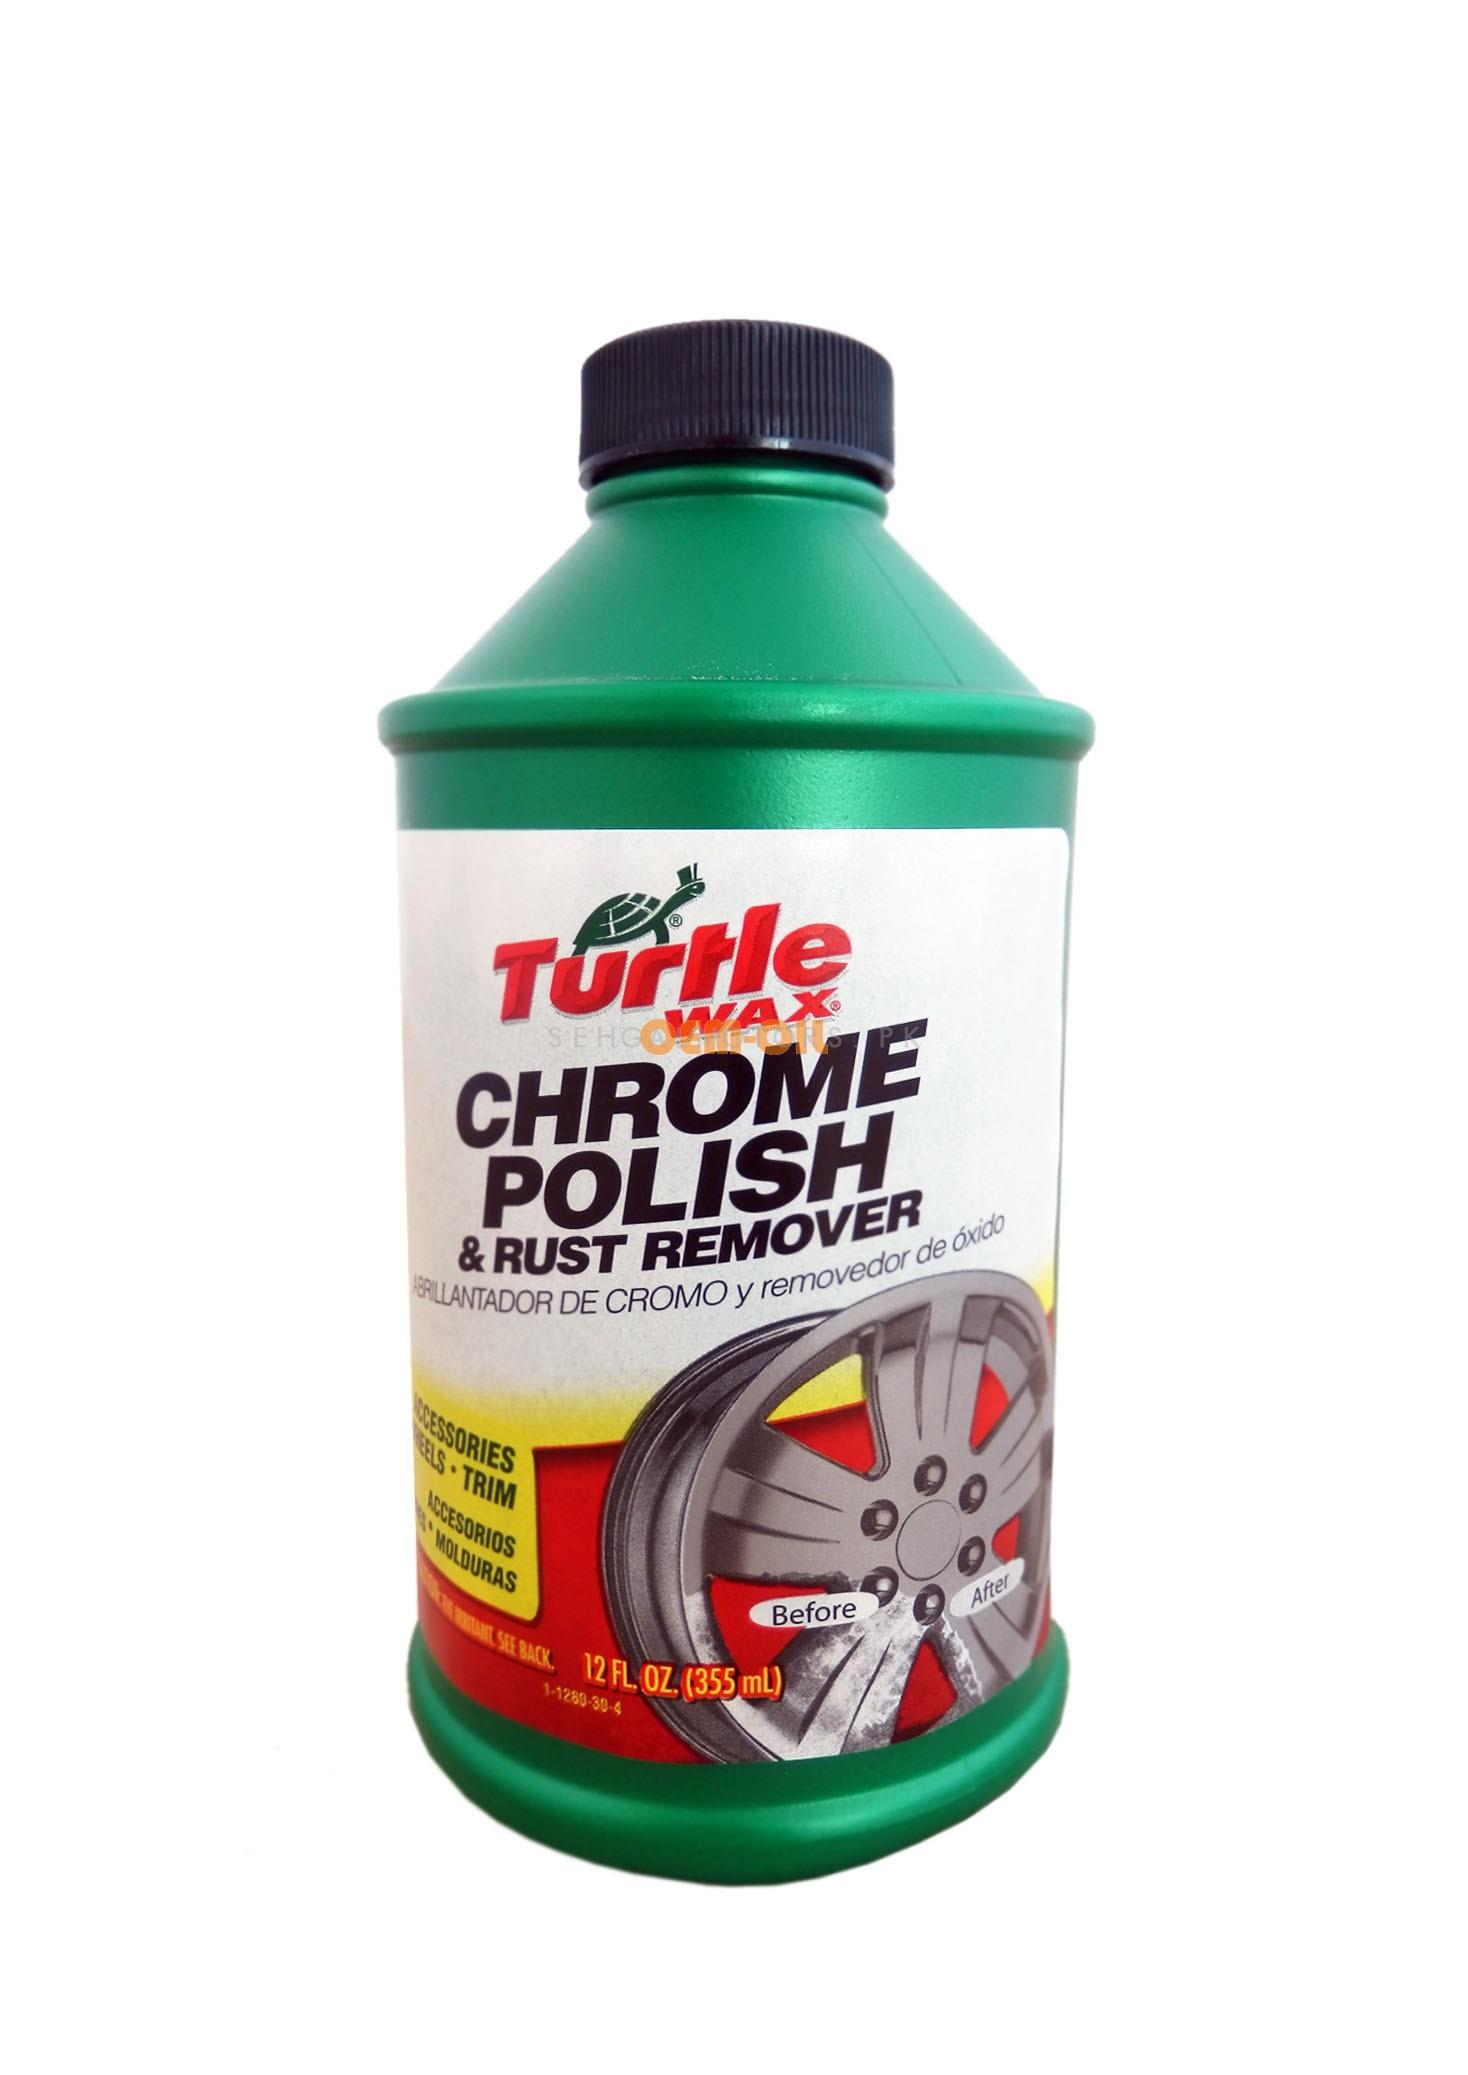 Turtle T280 Chrome Polish | Rust Remover For Chromium Plated Part | Chrome Cleaner | Cleaning Brightener Renovation Chrome Plating Retreading Agent | Chrome Cleaner Product | Chrome Polish -SehgalMotors.Pk